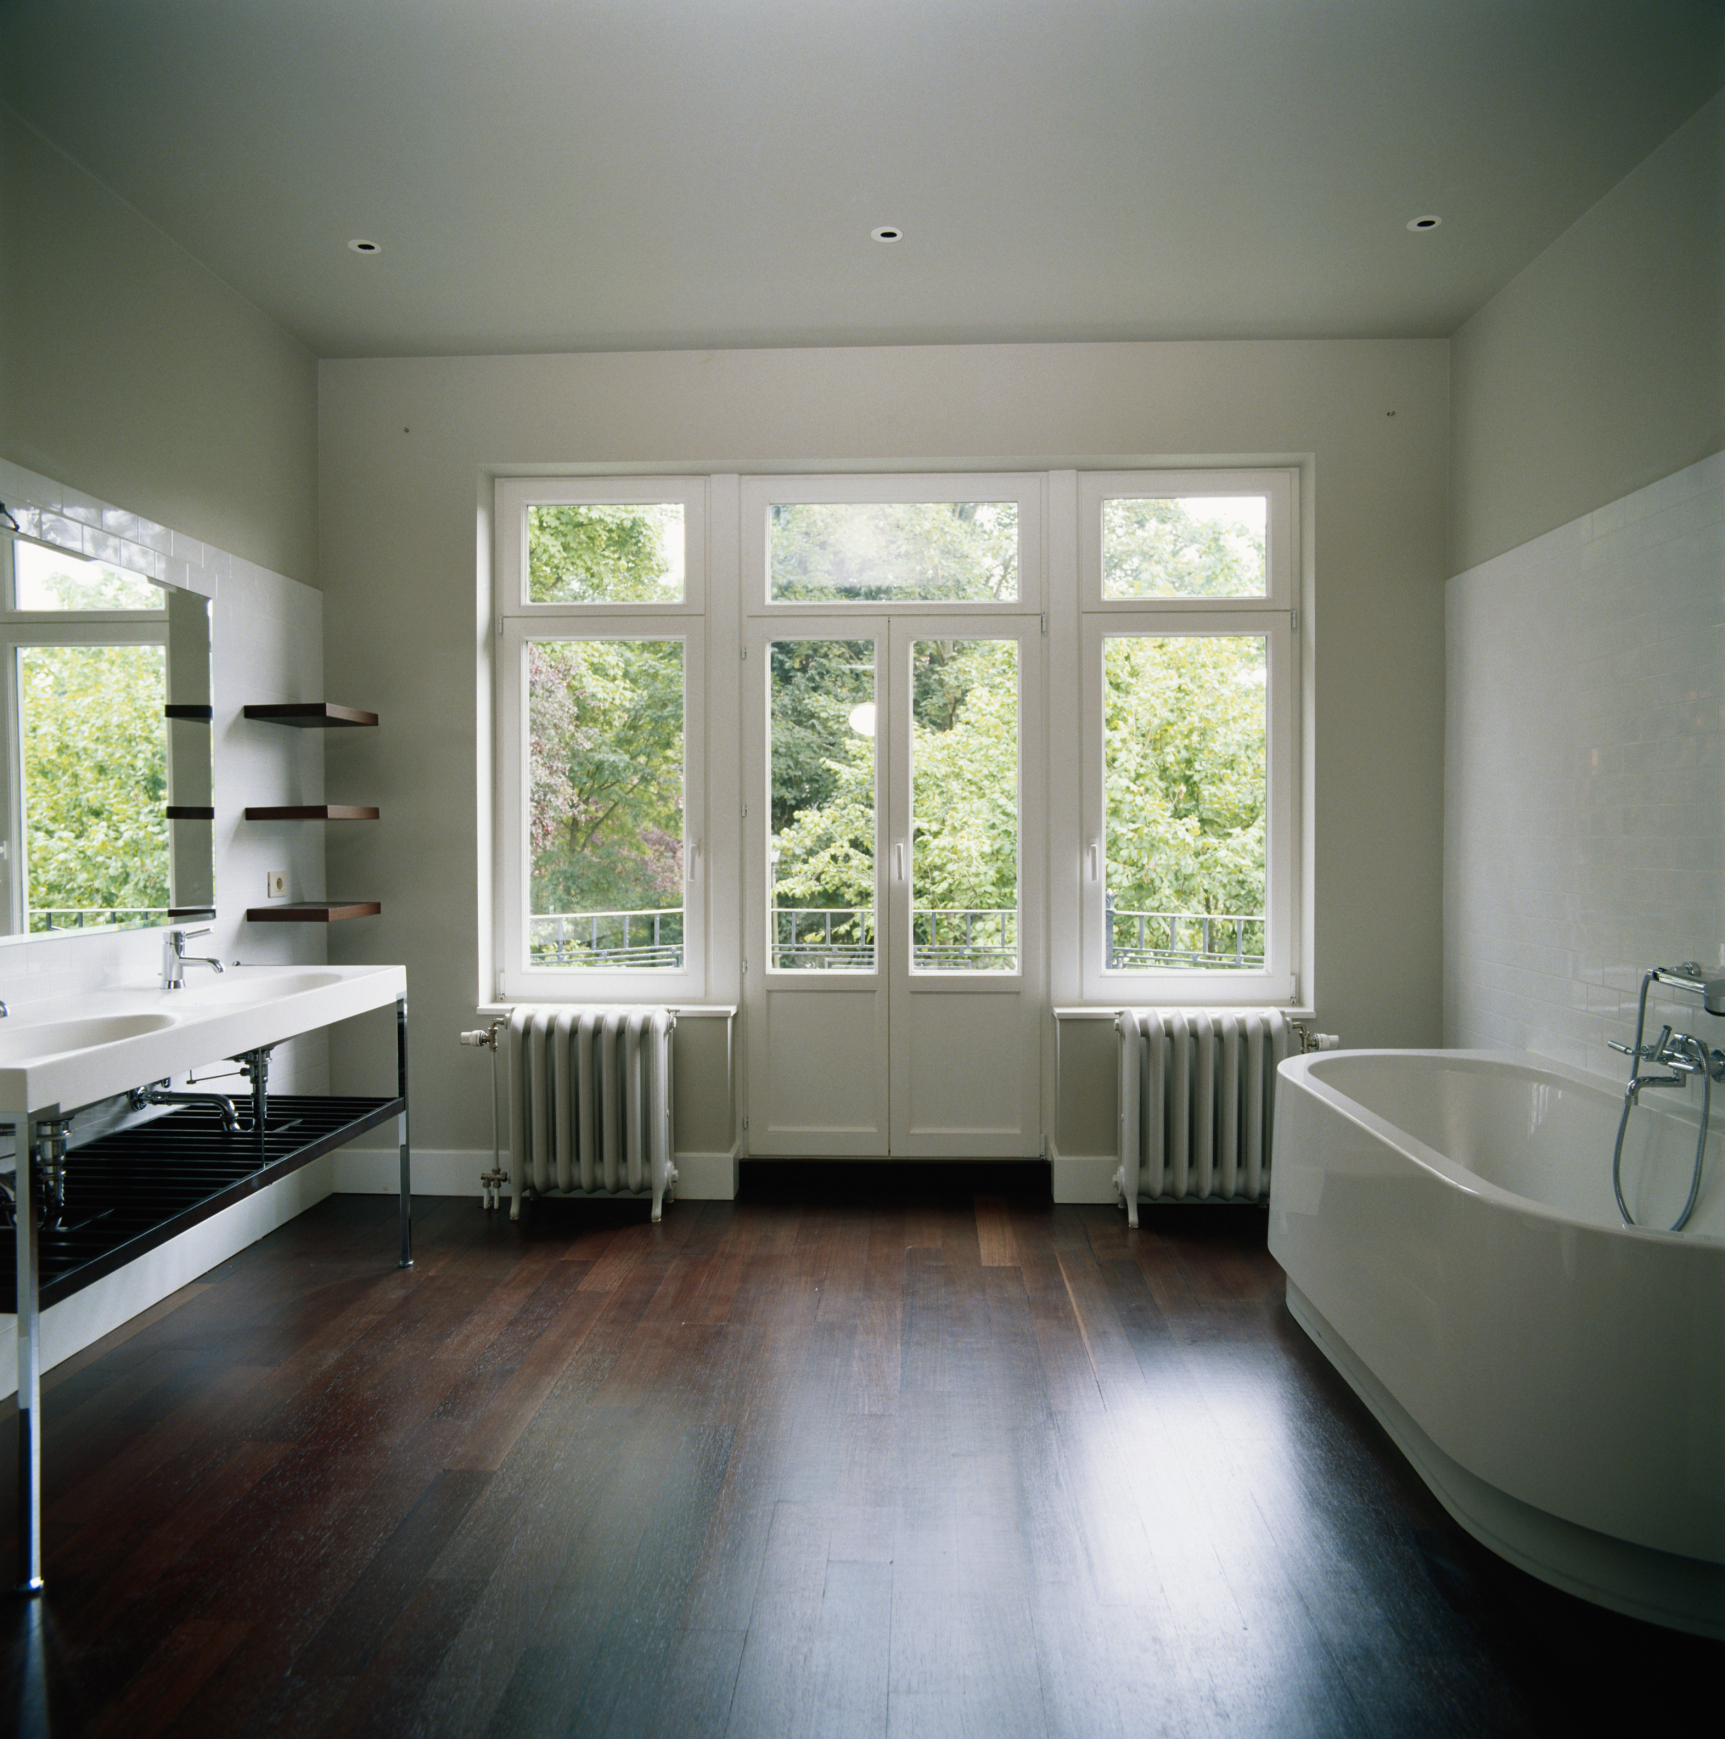 Does adding a bathroom increase home value - How Much Does A New Bathroom Increase The Value Of A House Home Guides Sf Gate